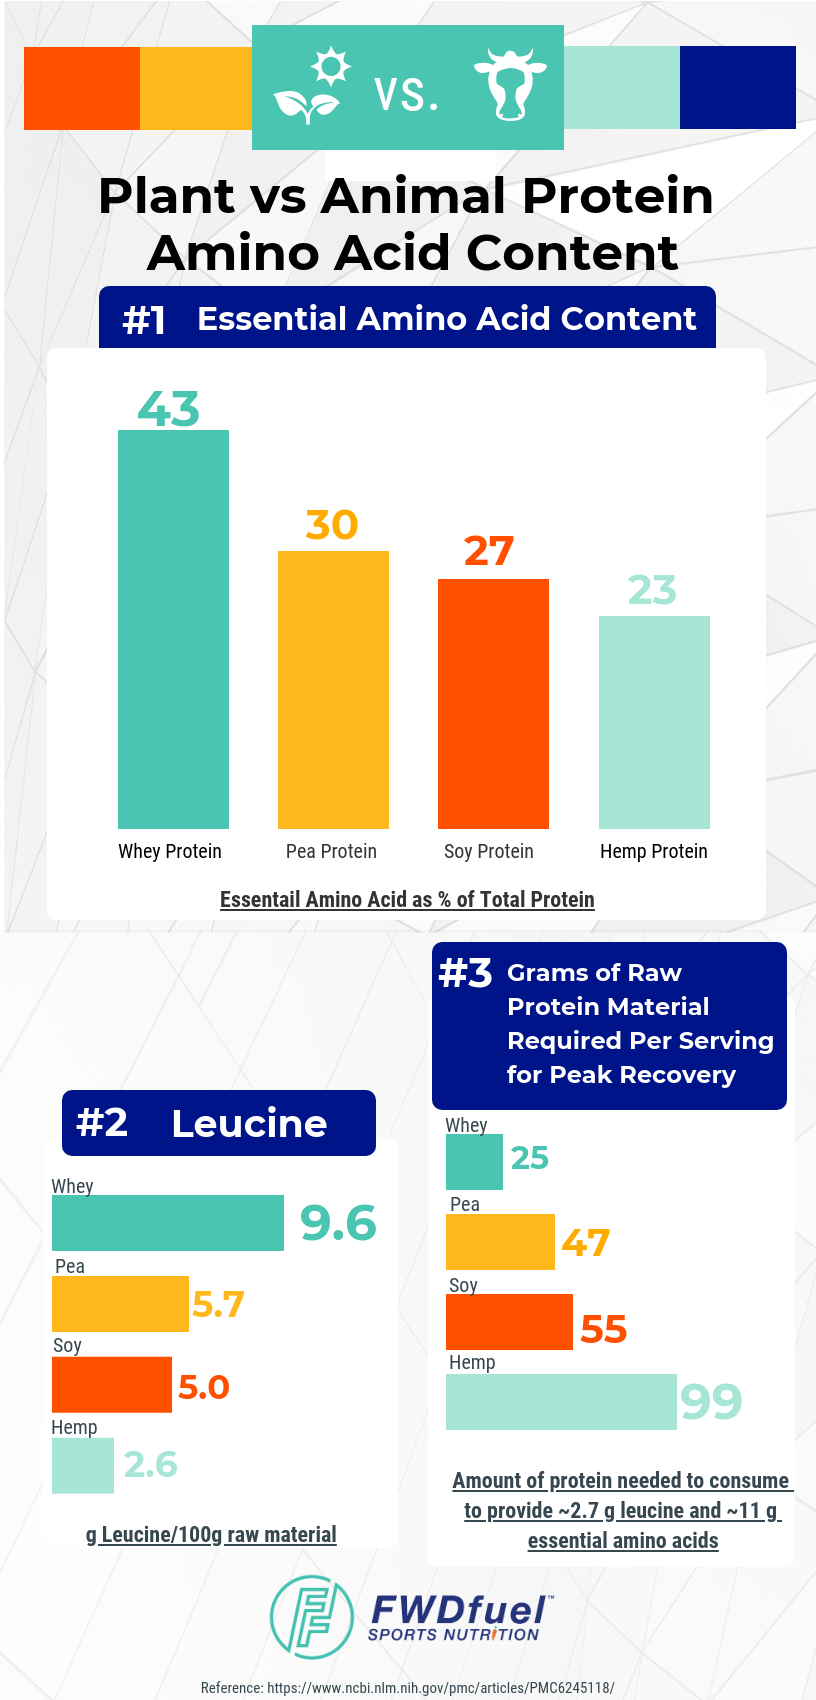 Infographic comparing the amino acid content of plant protein vs animal protein.